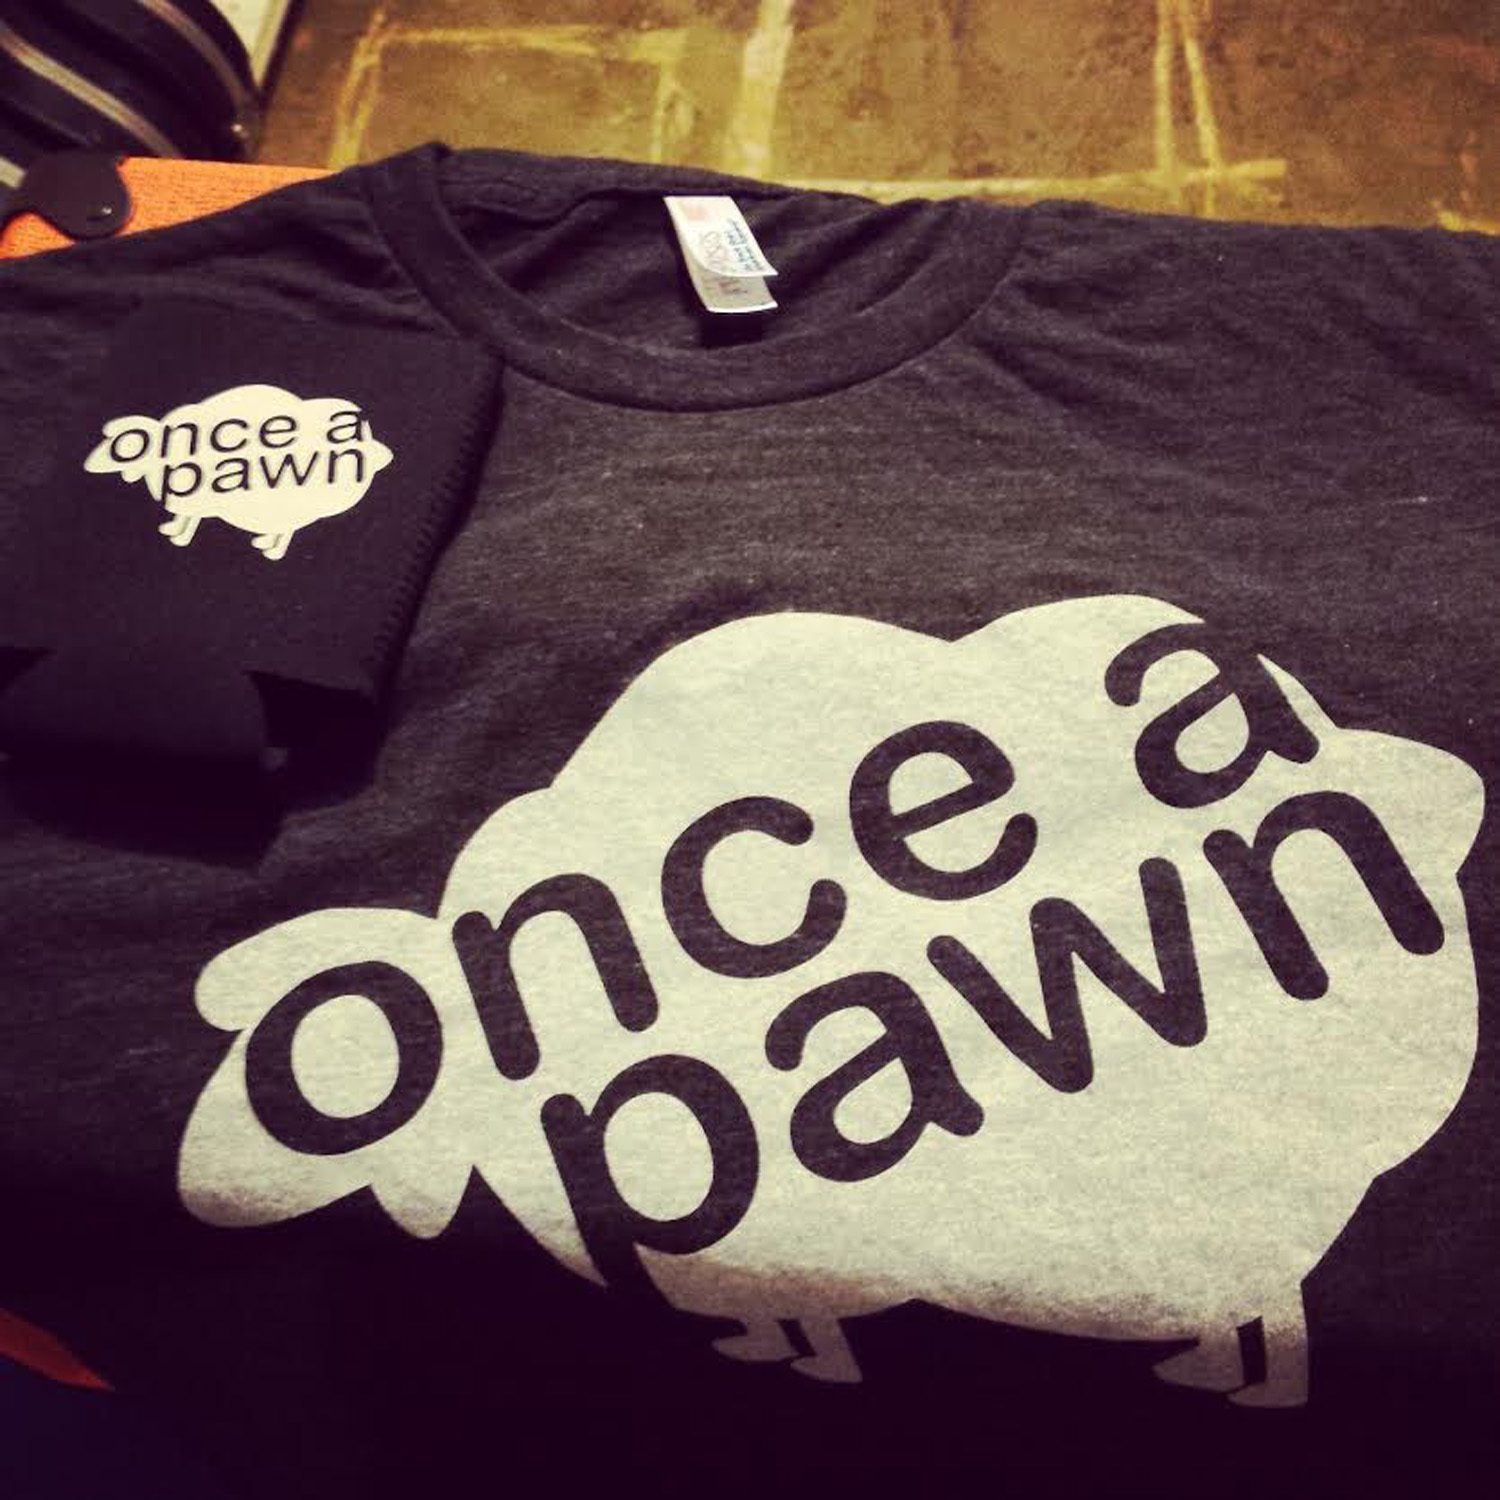 Once a Pawn tshirts, comfy American Apparel triblends, and kookzies.